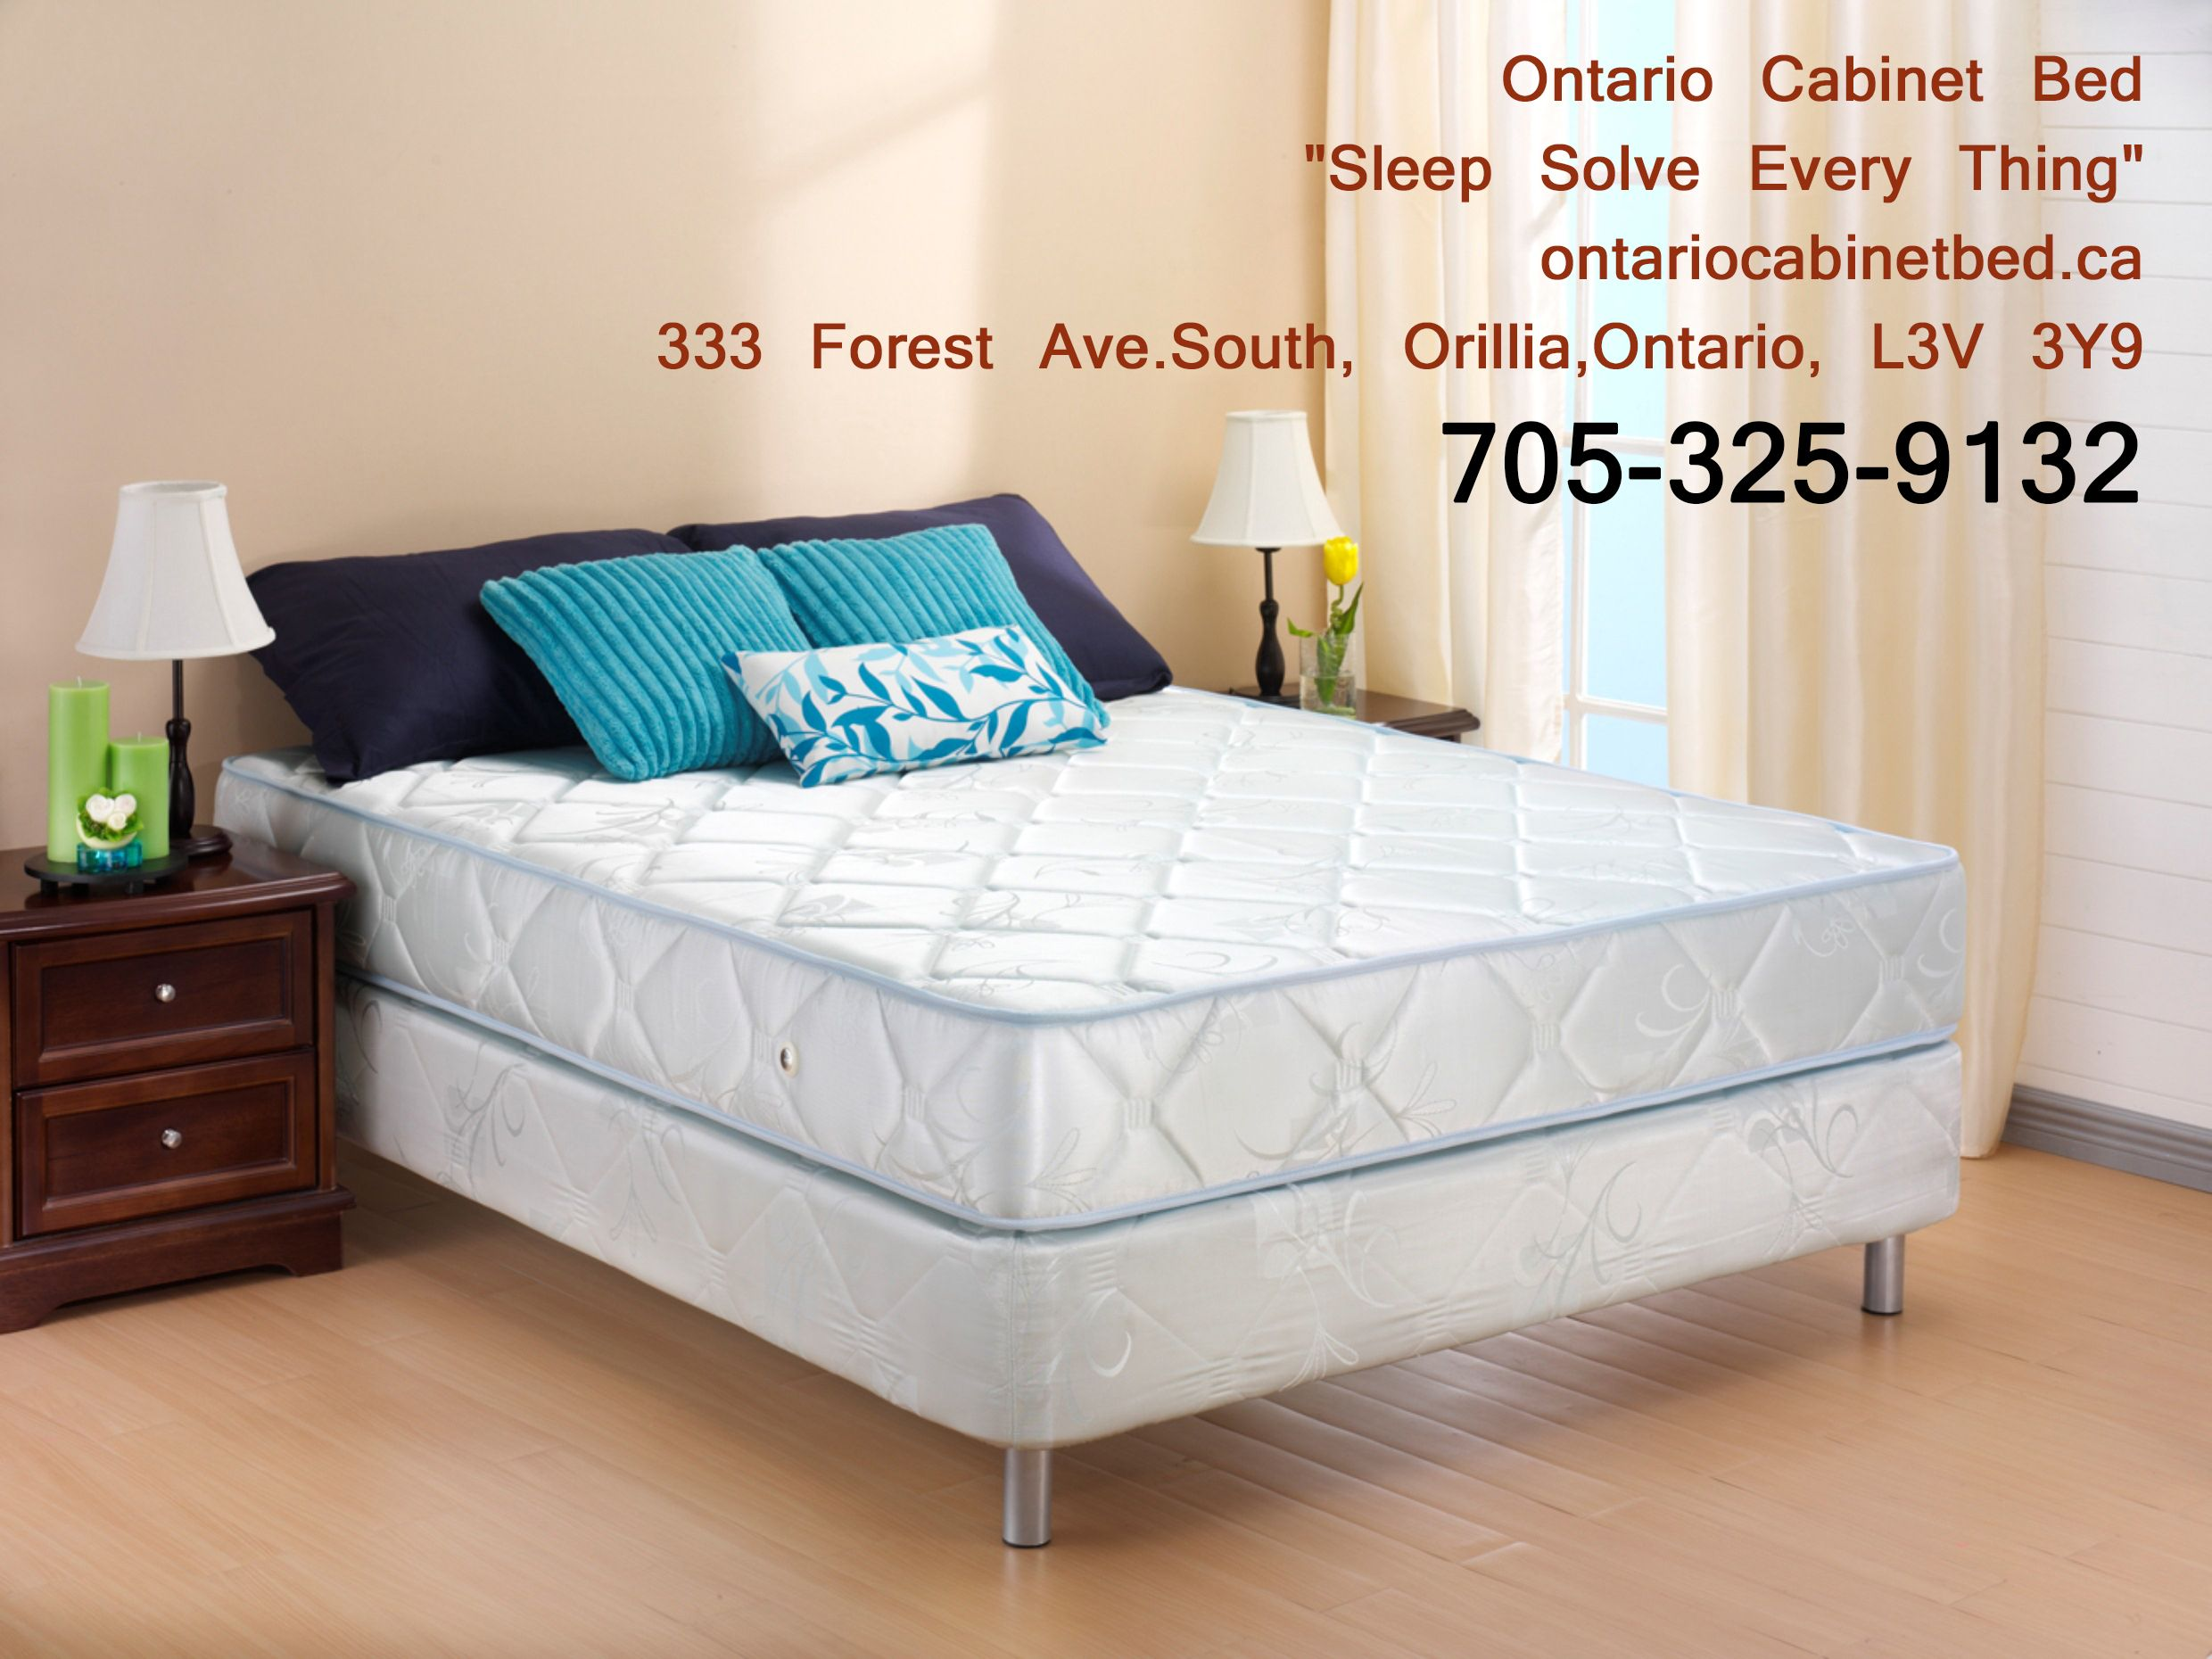 Are You Searching For A Soft And Durable Mattress Well Make Sure To Explore The Various Styles Design And Siz Comfort Mattress Mattress Queen Mattress Size